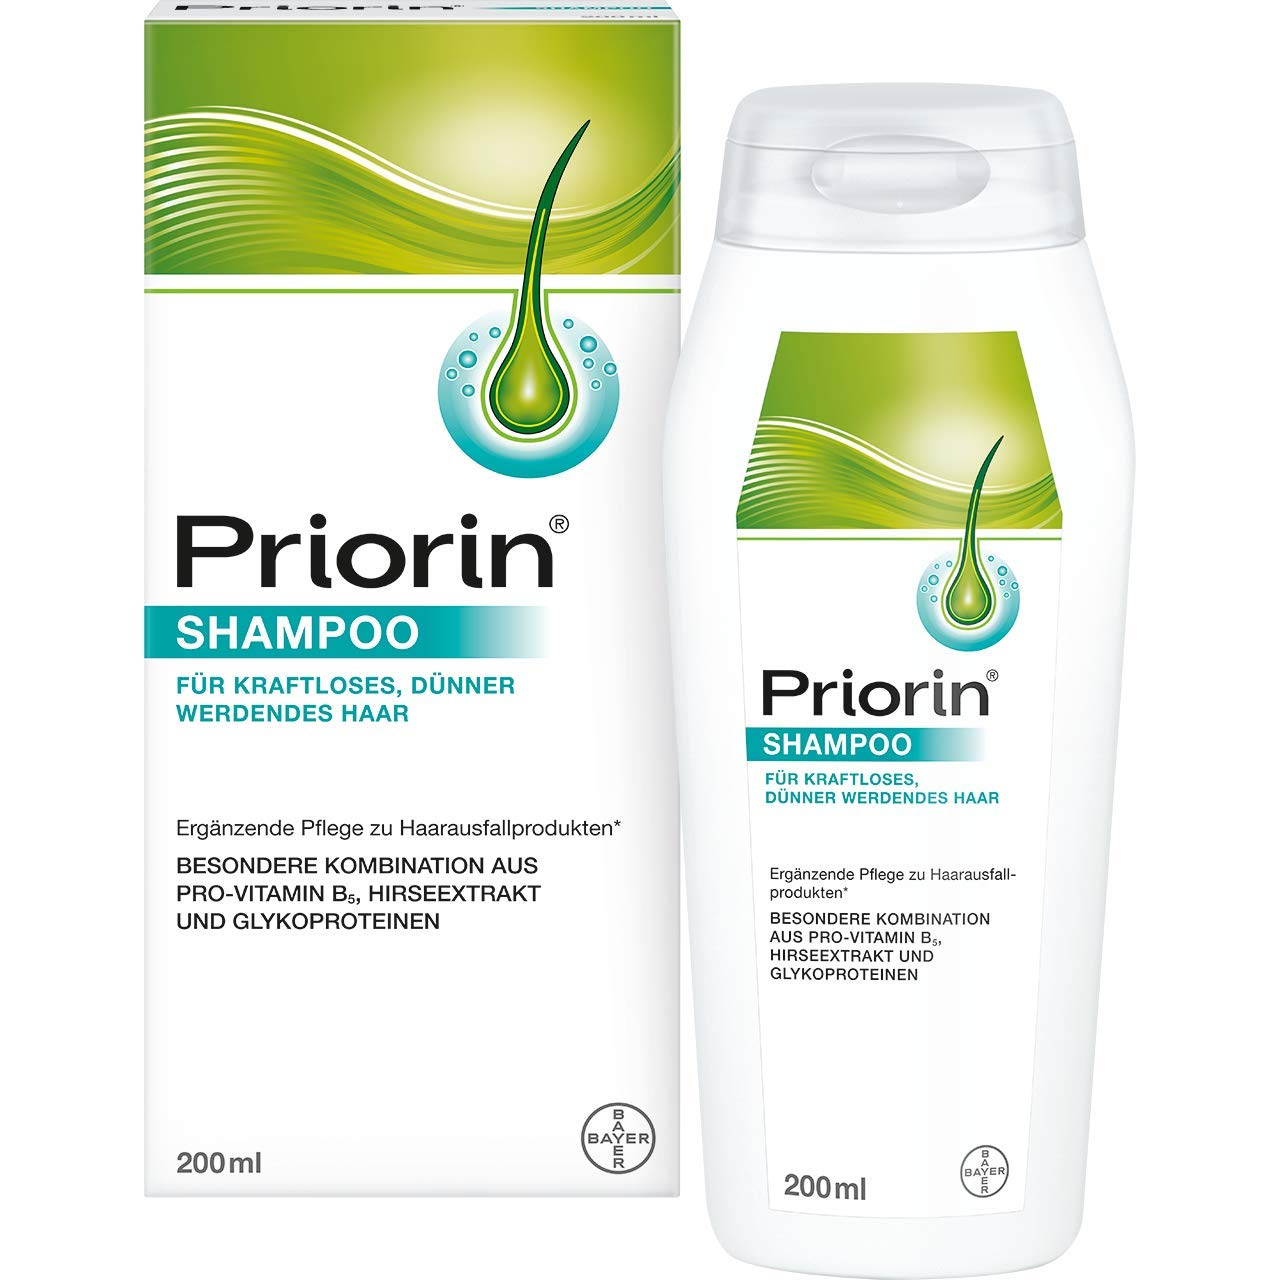 Bayer Priorin Shampoo Shampoo for Hair Loss Dry and Normal Hair 200ml/6.8oz